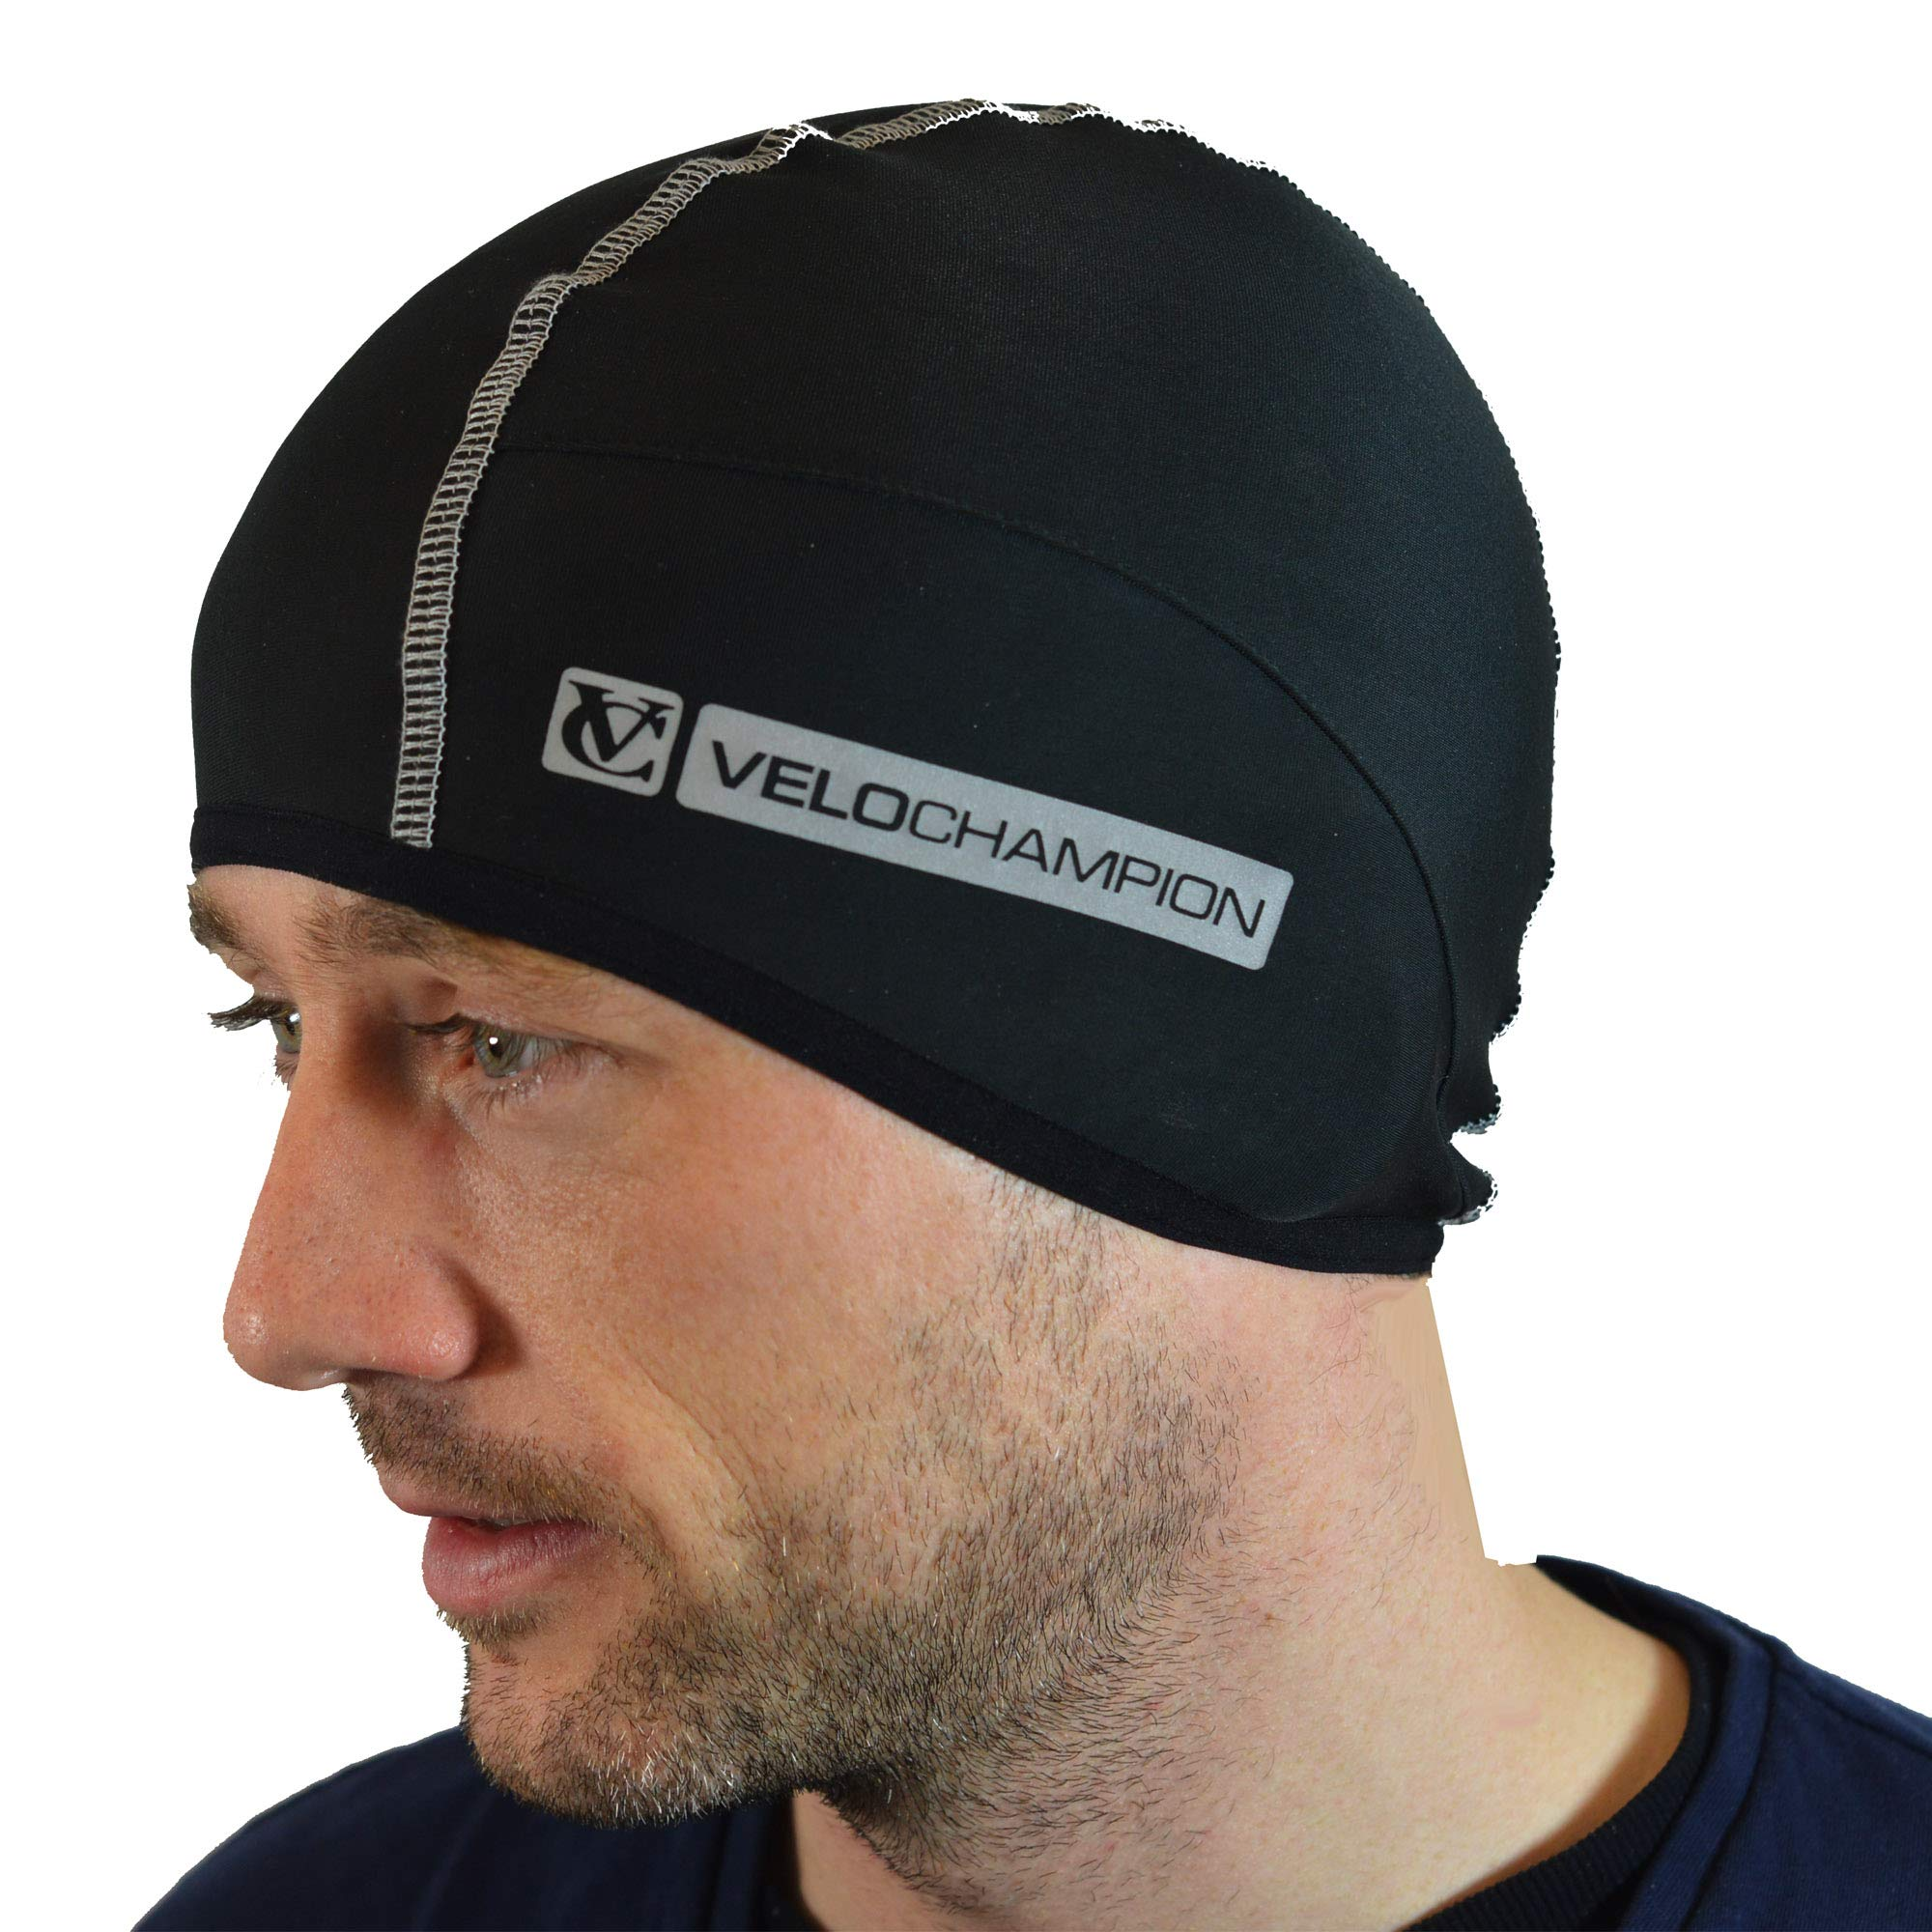 VeloChampion Thermo PRO Thermal Insulation Wind Protection Sports Beanie Tech Cycling, Running Hat Skull Cap Under Helmet Hat product image